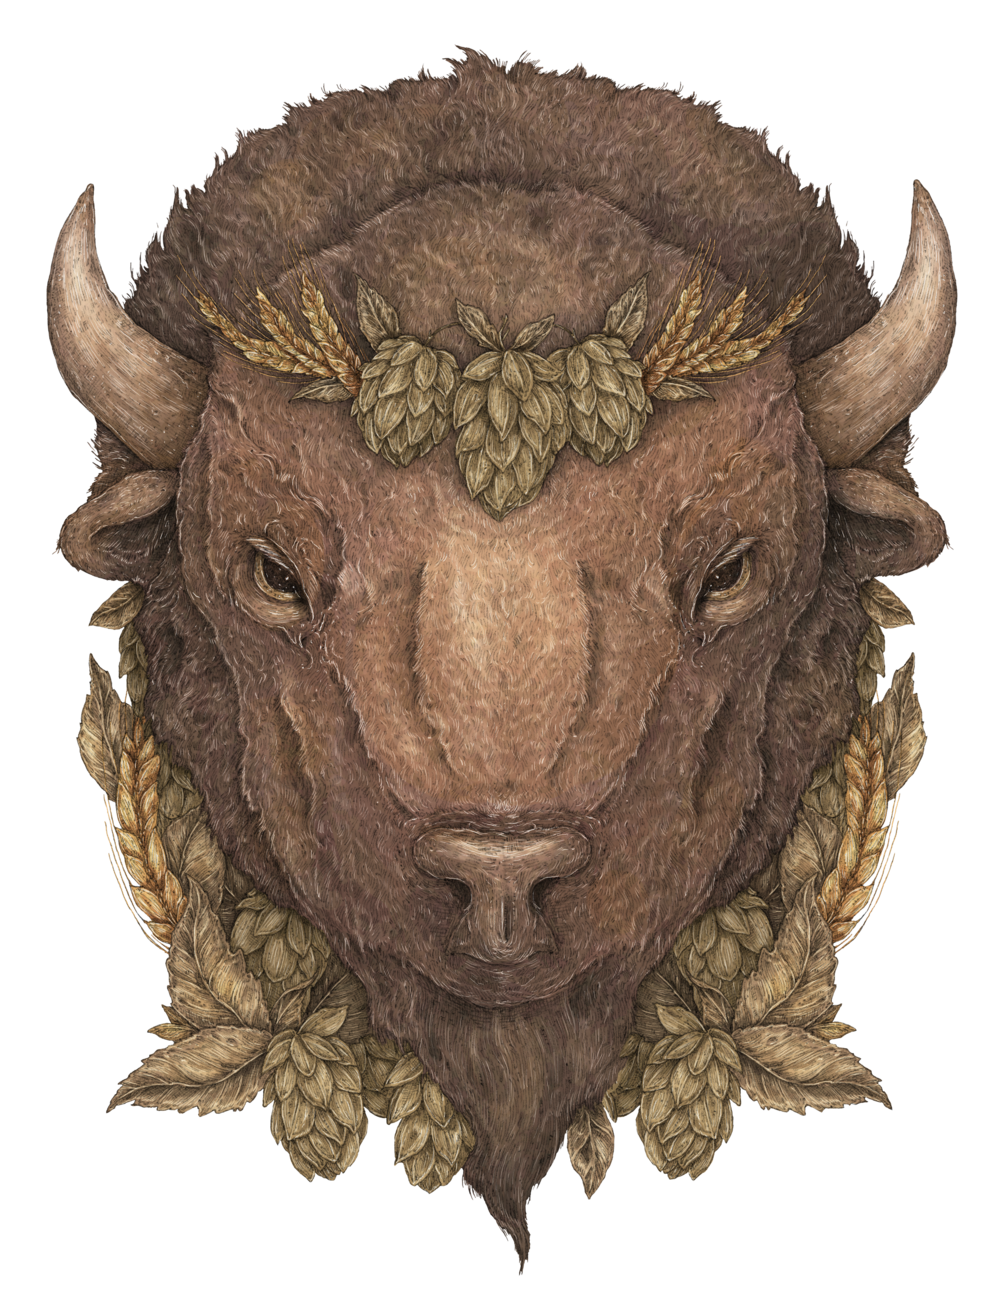 bison-nobackground copy.png